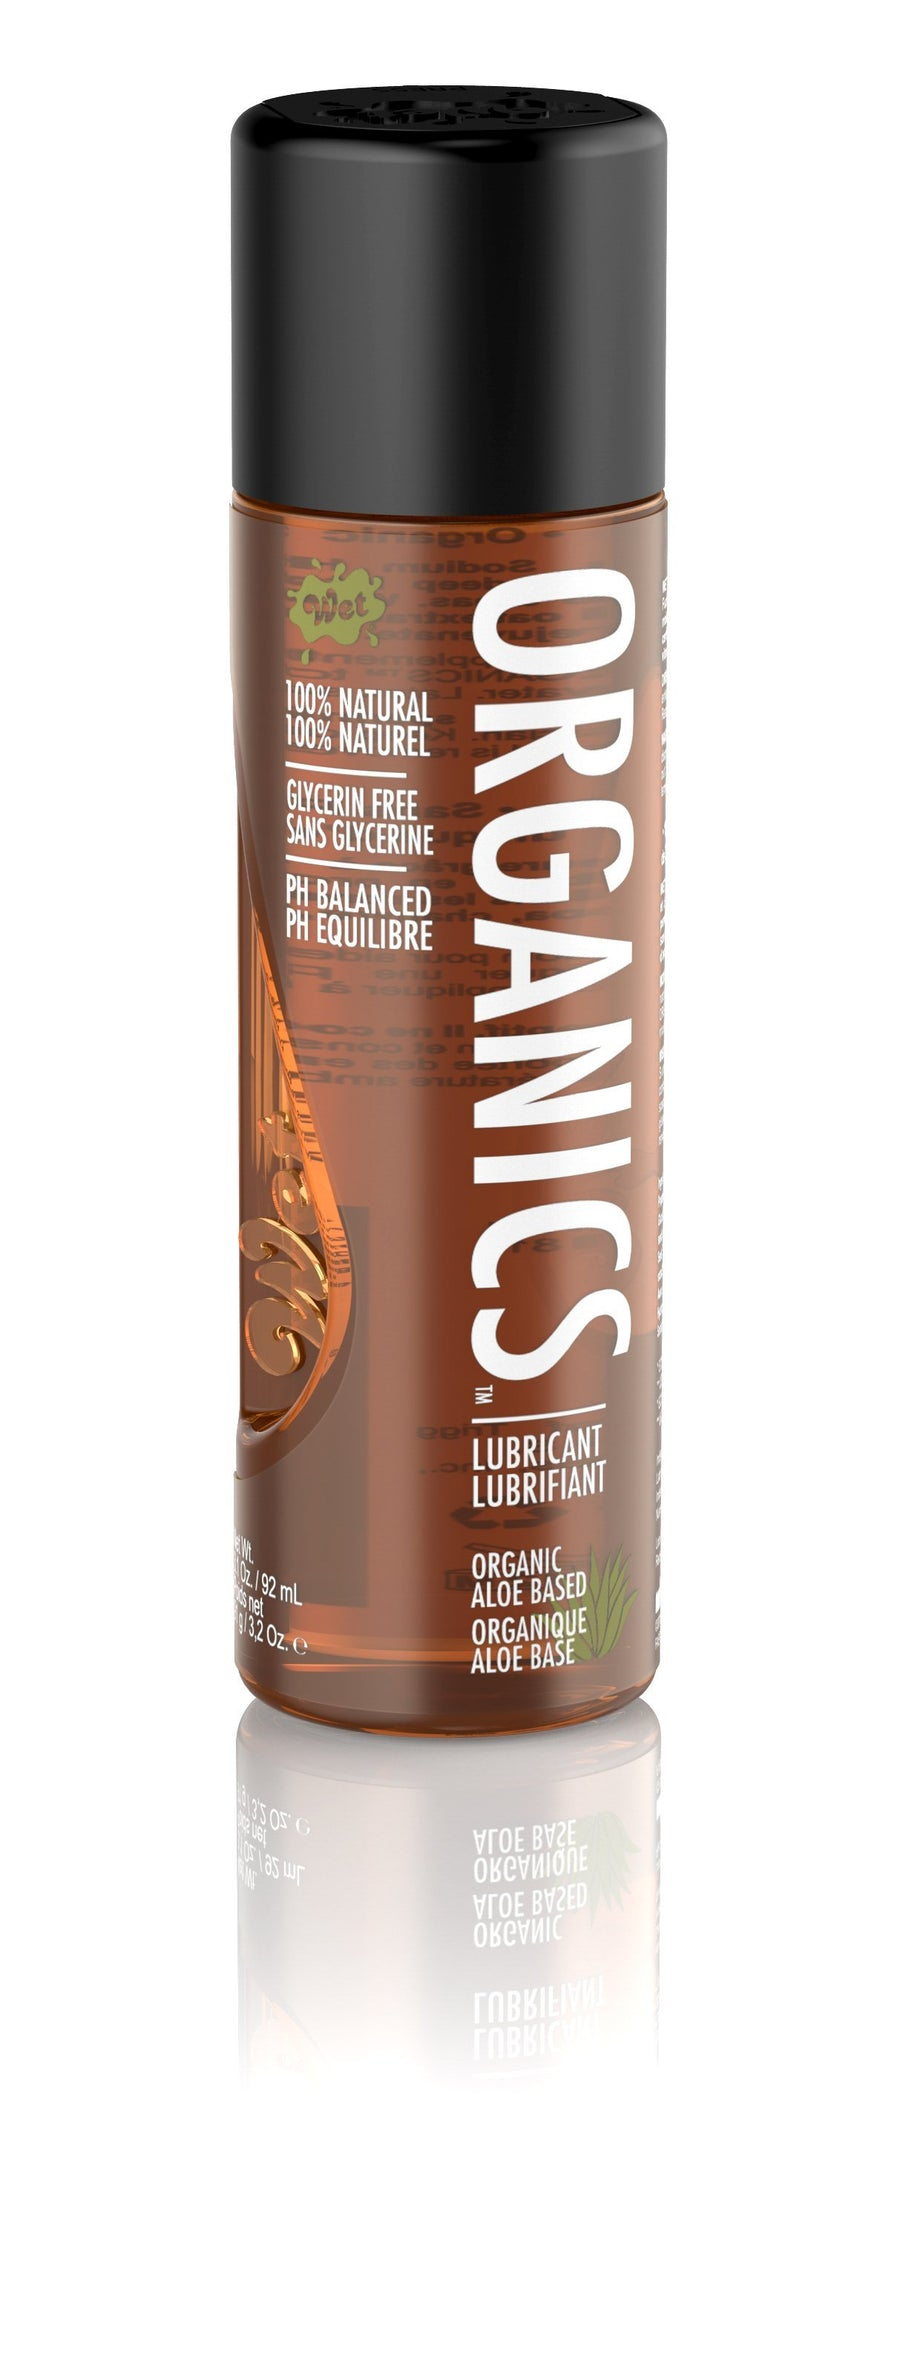 Wet - Organics Lubricant 3oz (Brown) Lube (Water Based) Singapore